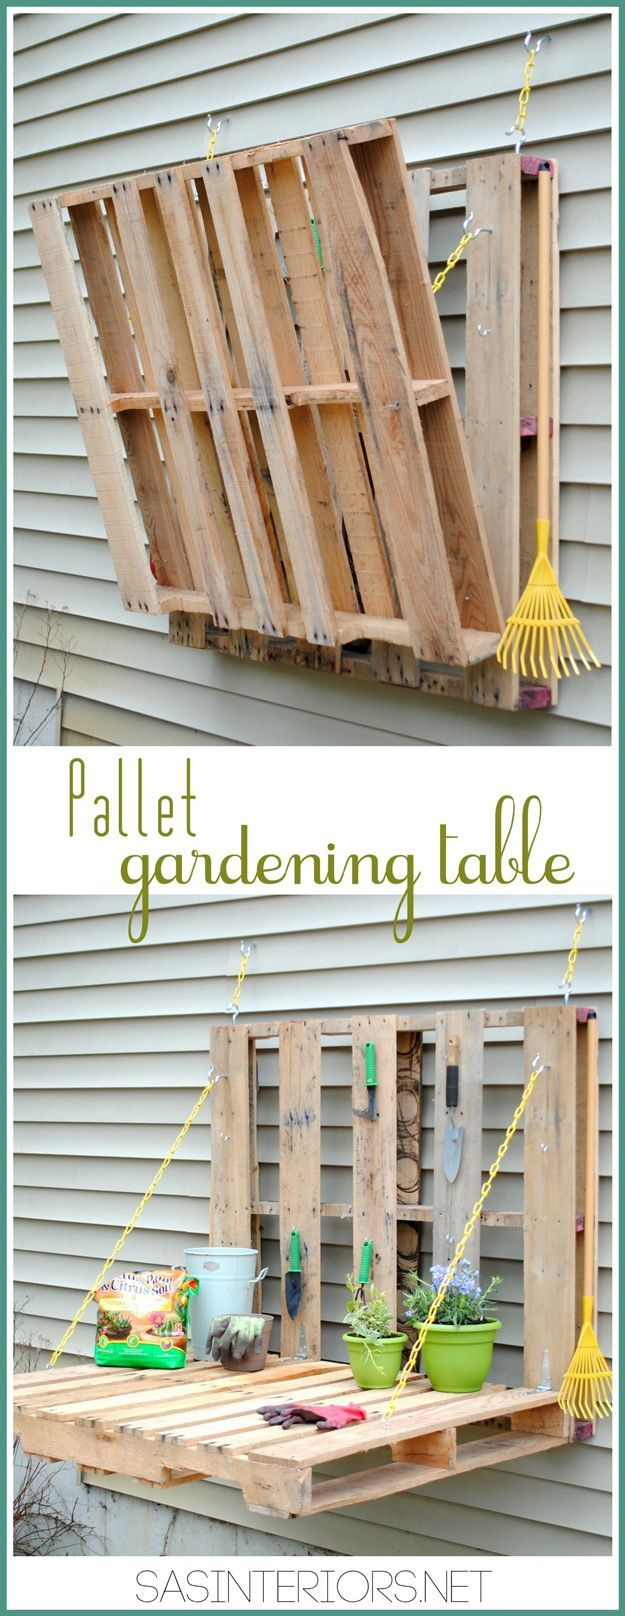 Best 10 Pallet gardening ideas on Pinterest Pallets garden